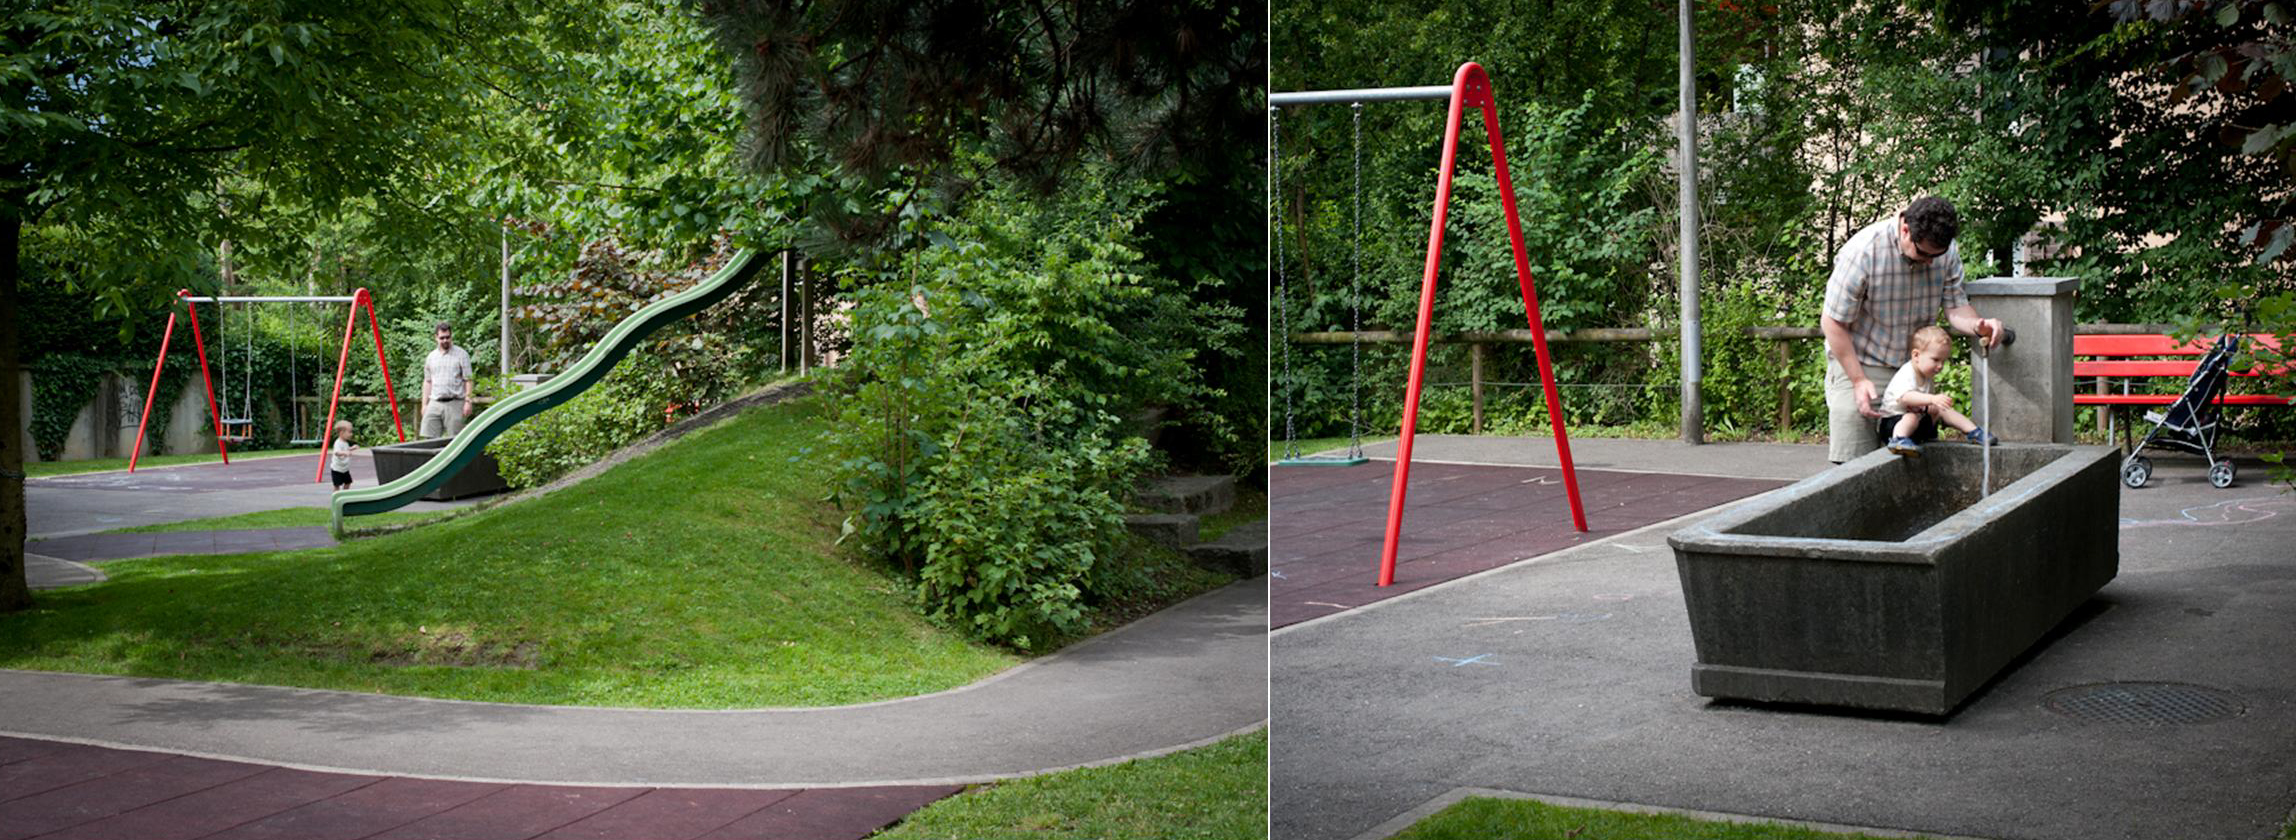 A small, nature-rich playground in Lucerne